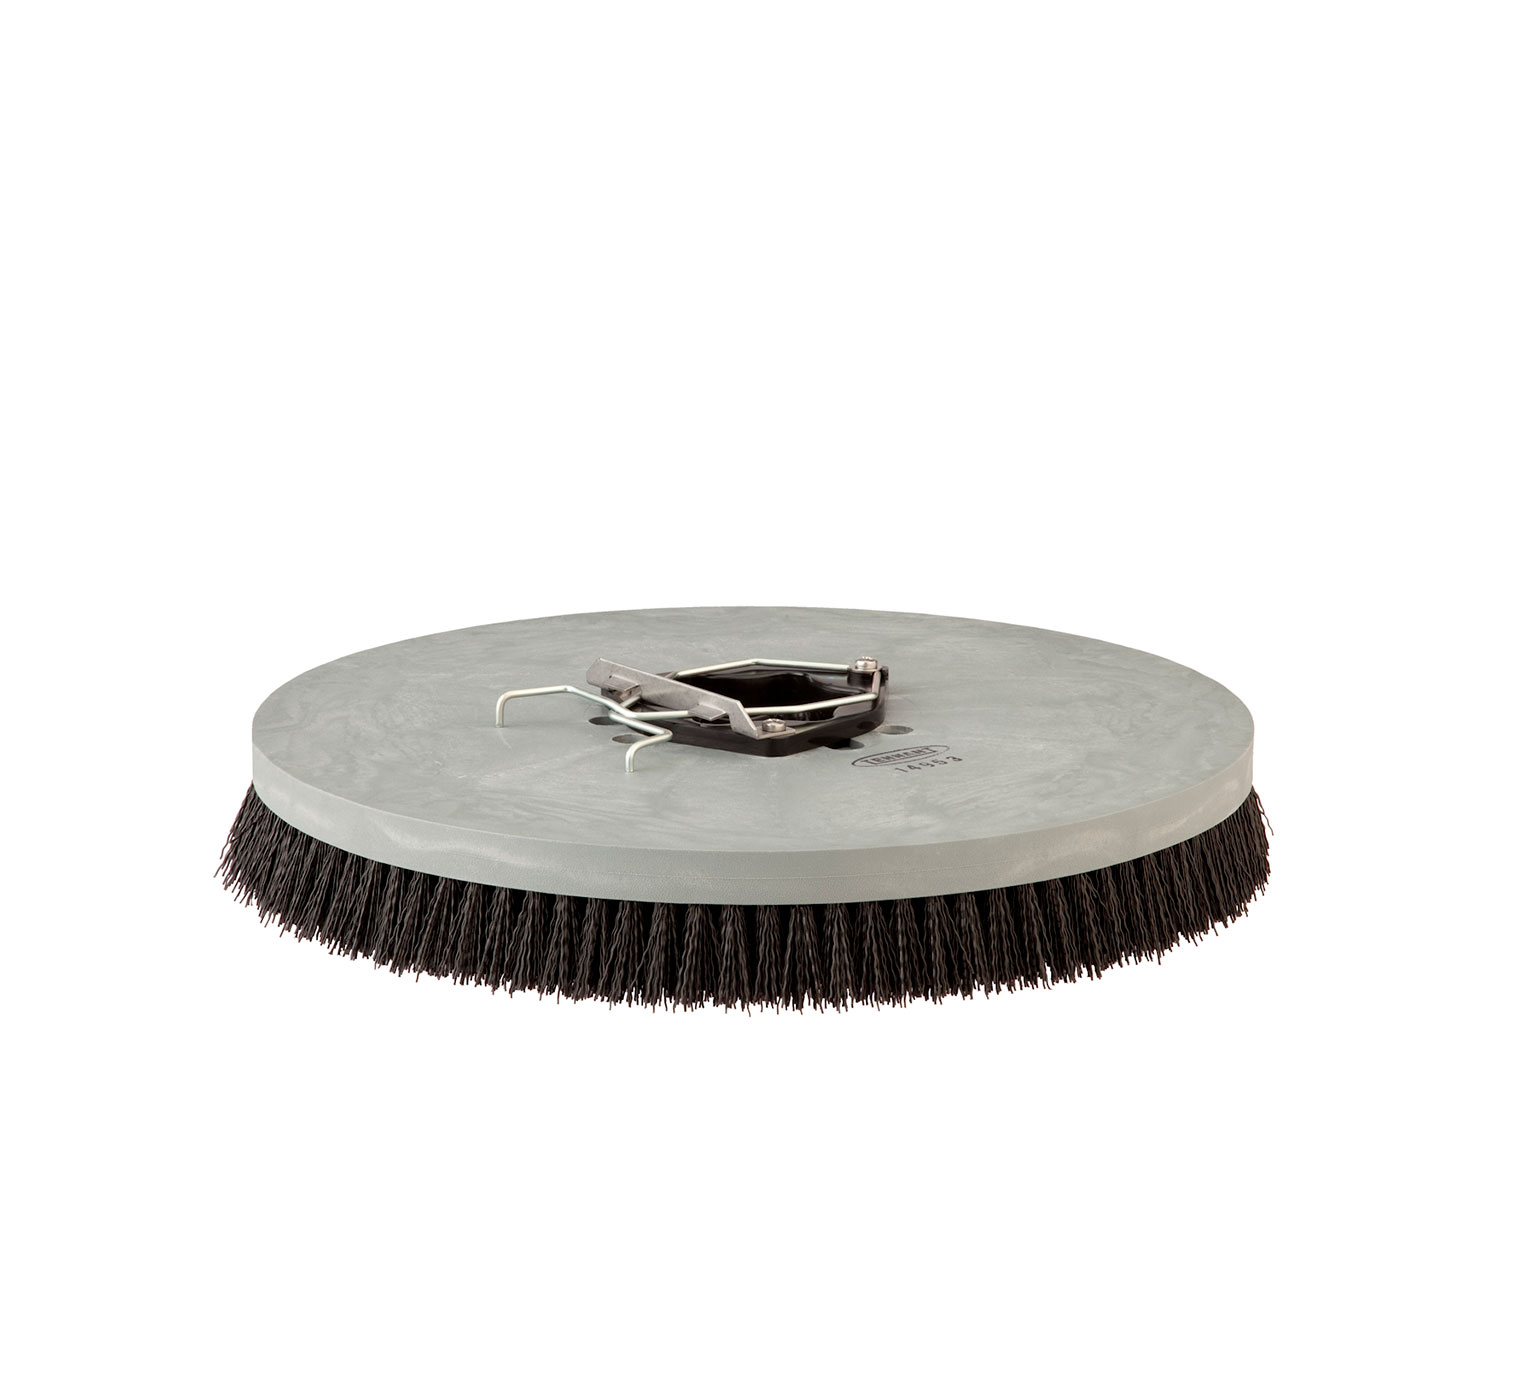 14953 Polypropylene Disk Scrub Brush Assembly – 20 in / 508 mm alt 1